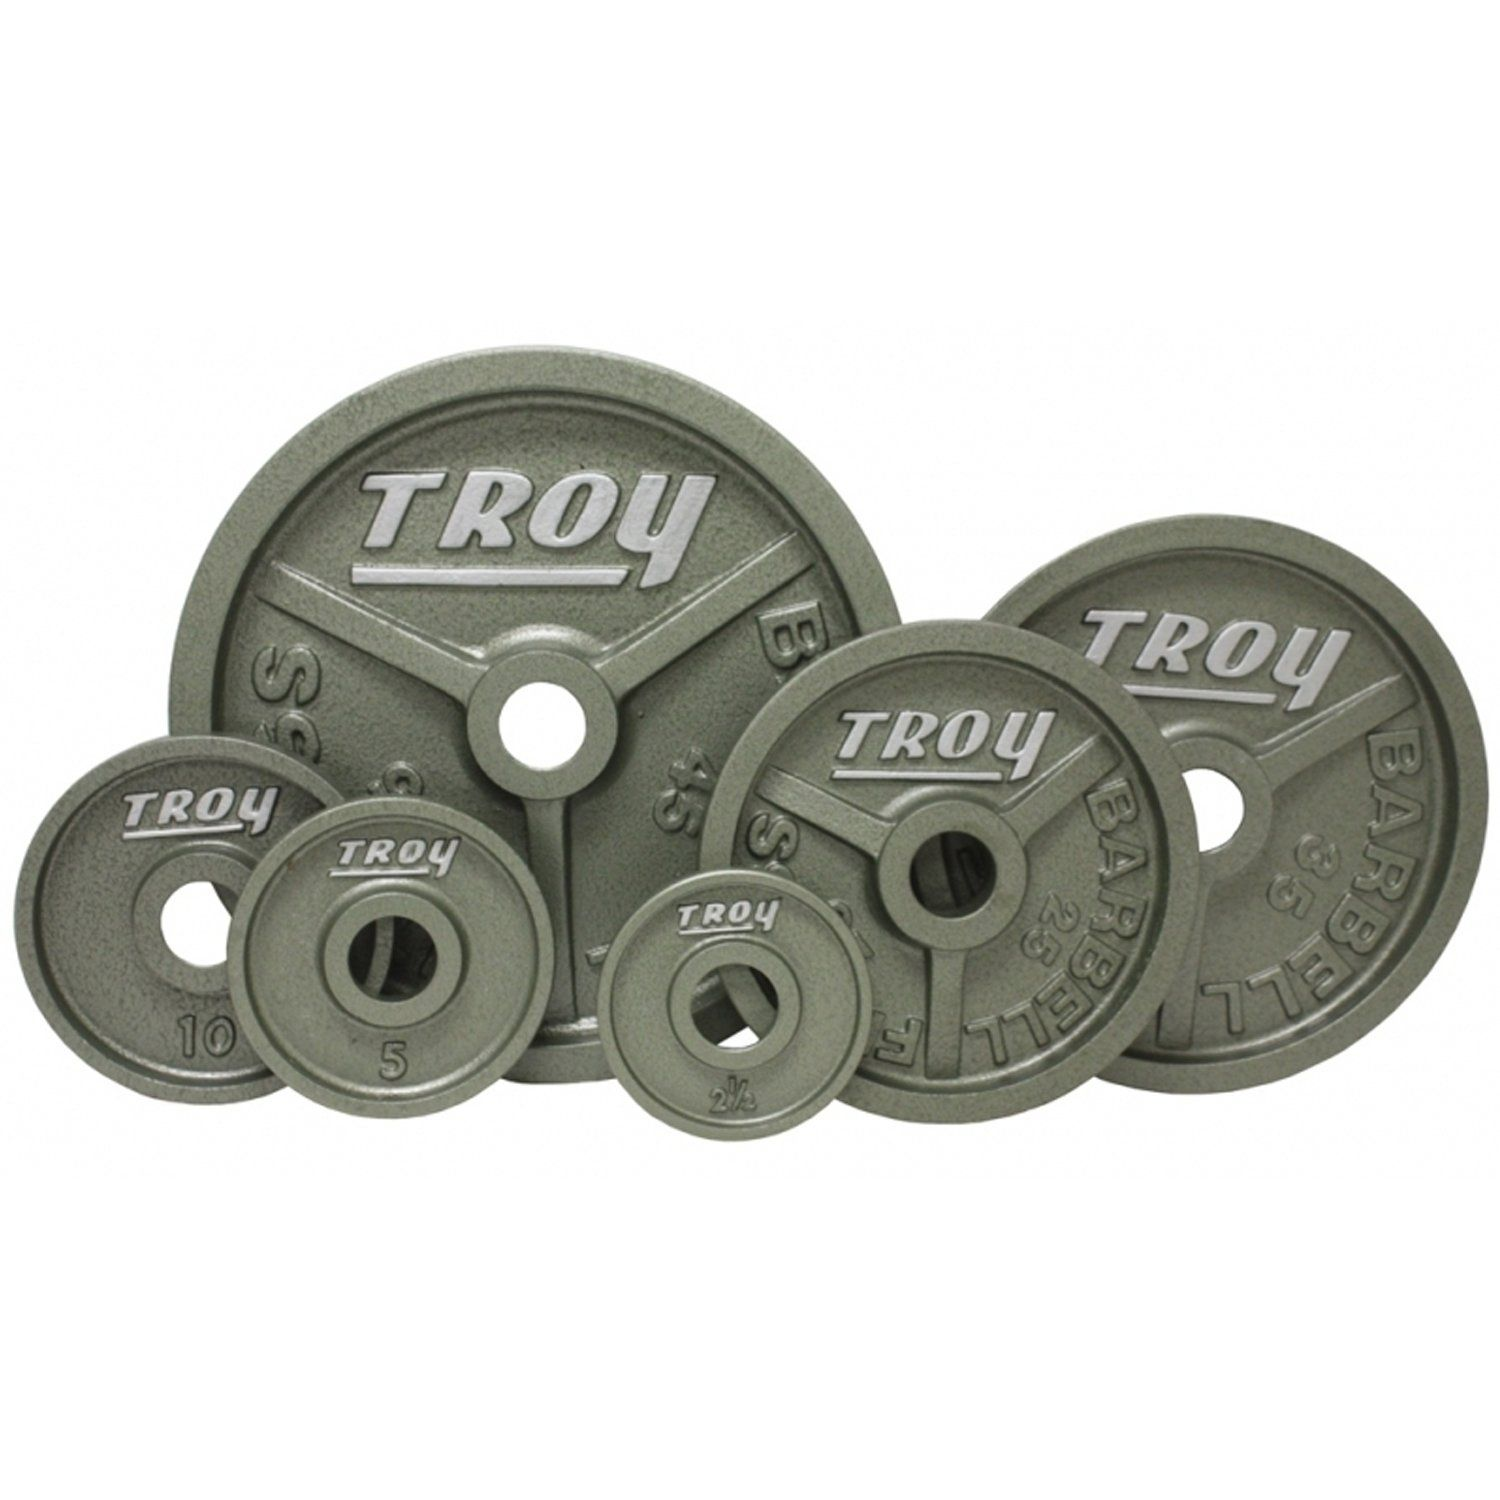 Troy High Grade Fully Machined Wide Flanged Olympic Plate. Rich ...